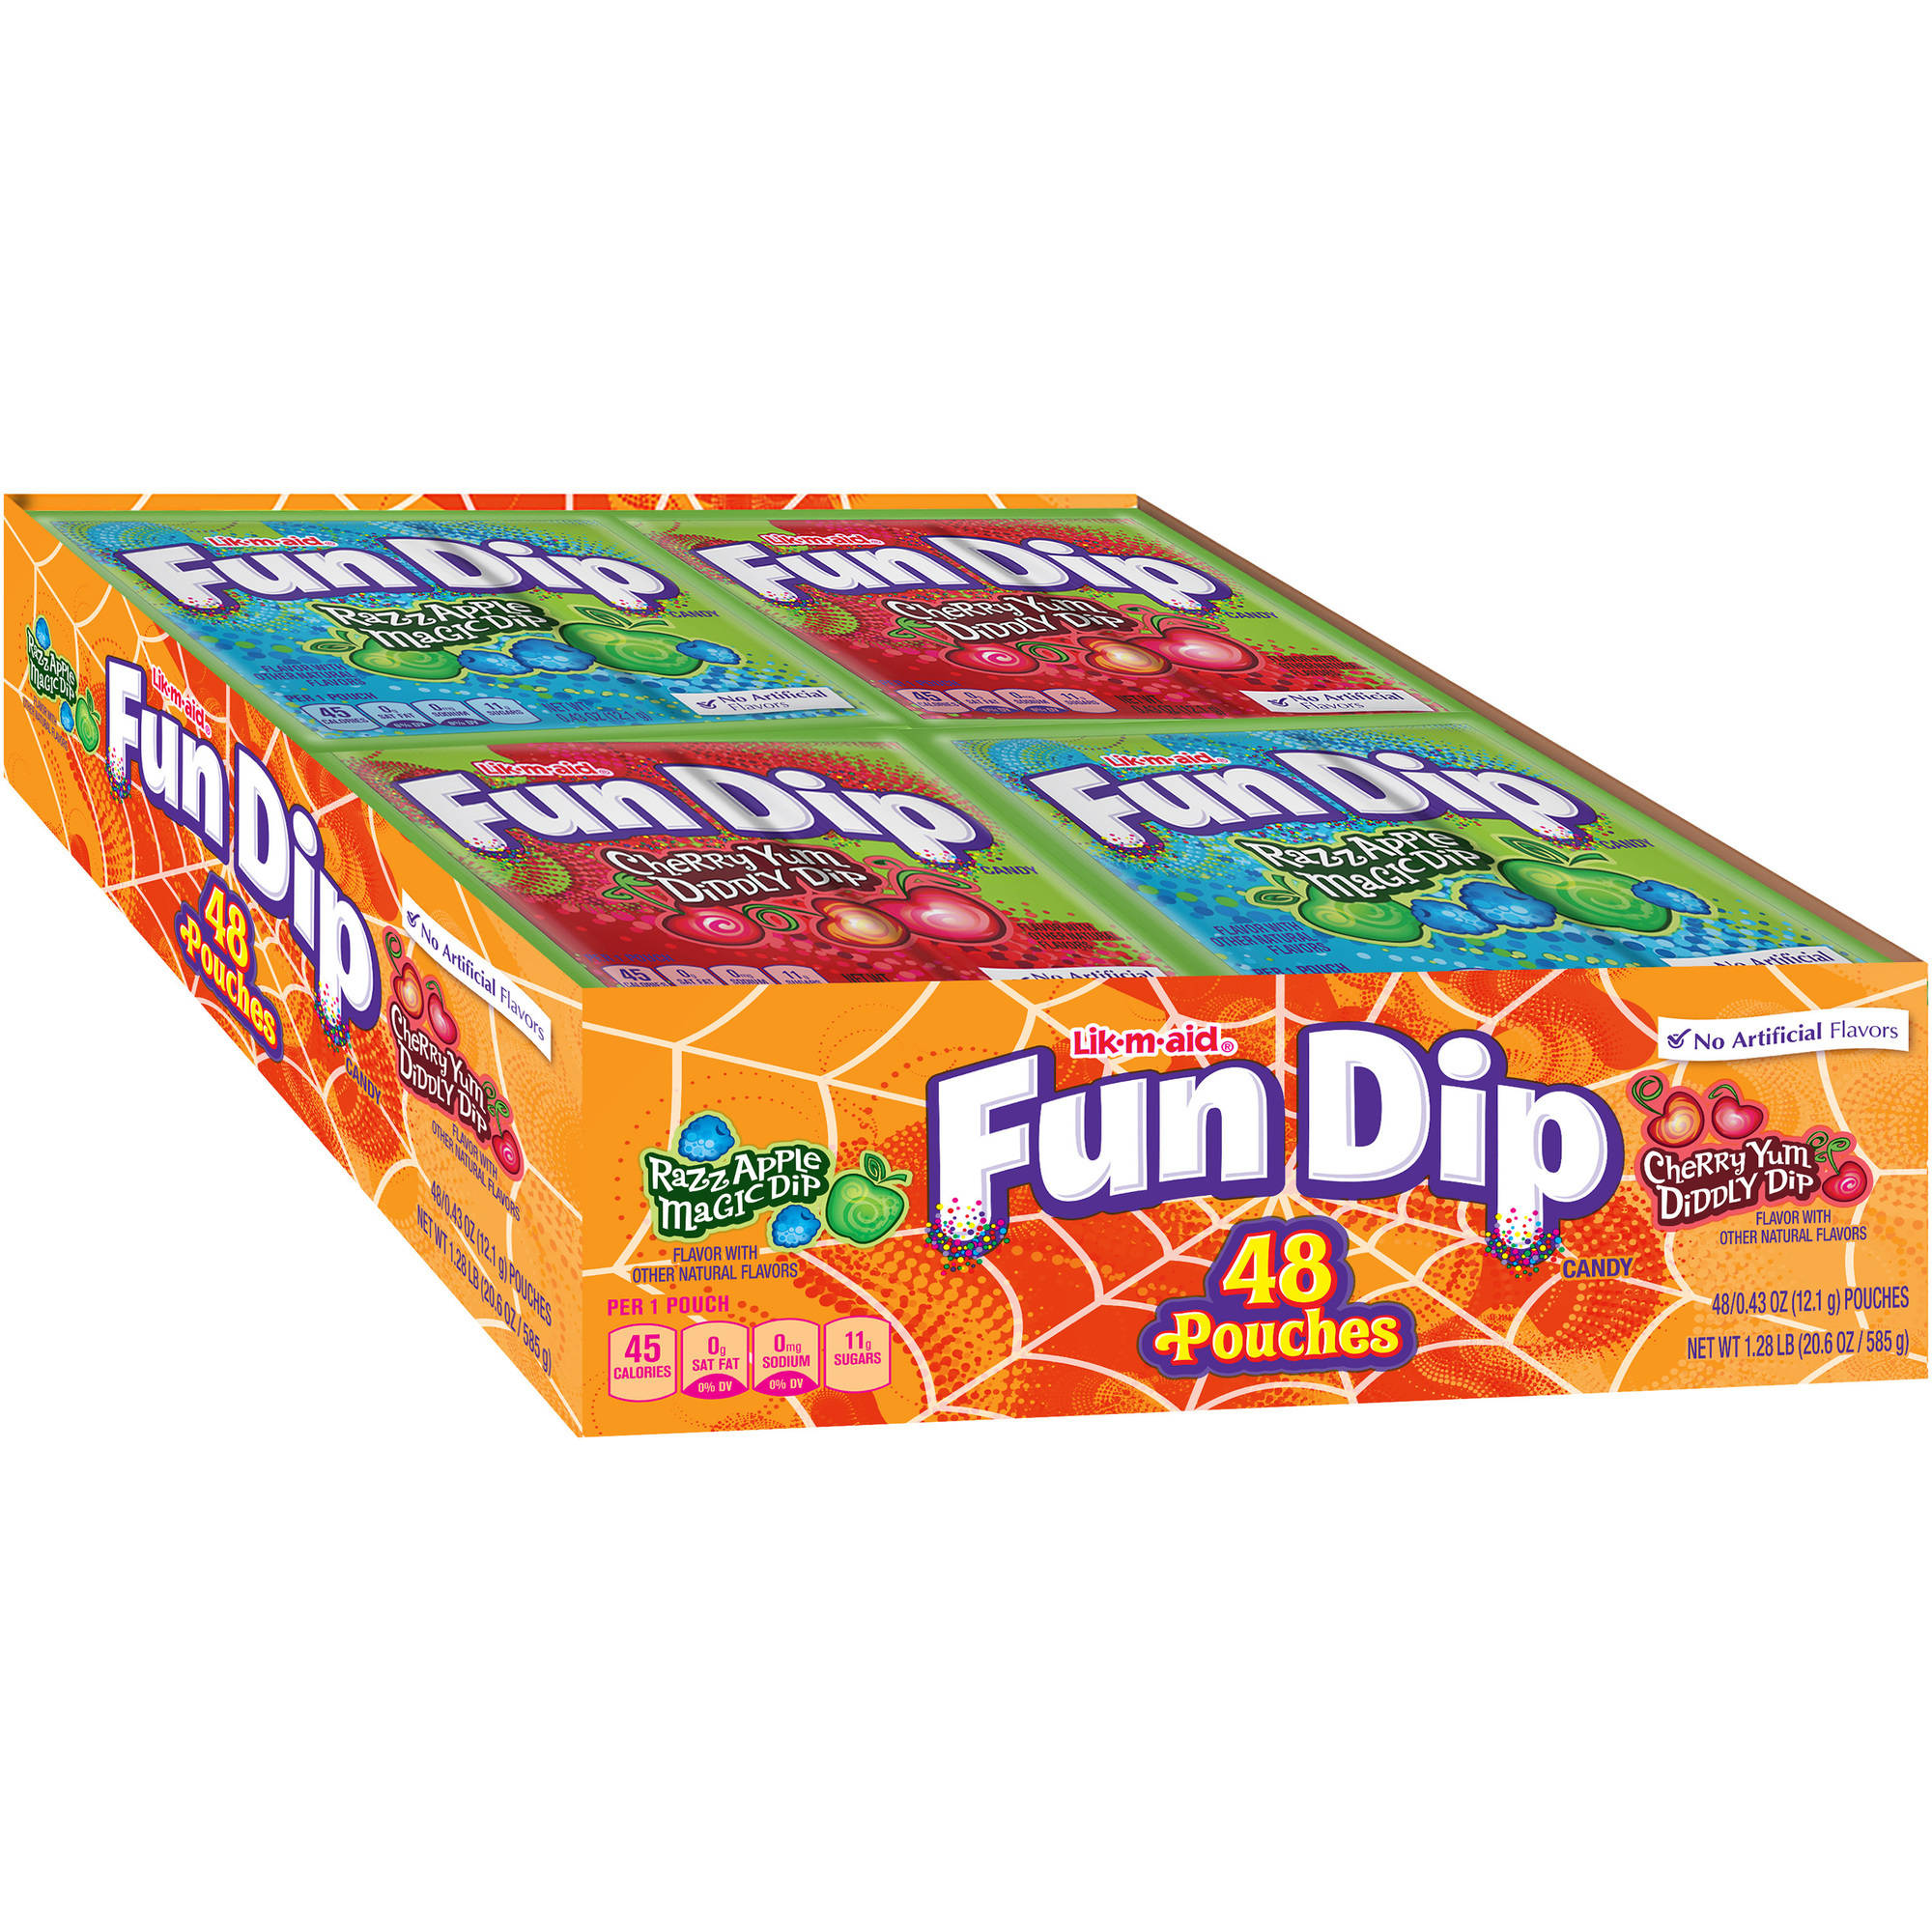 Lik-m-aid Fun Dip Assorted Treat Size Halloween Candy Pouches, 48 count, 20.6 oz